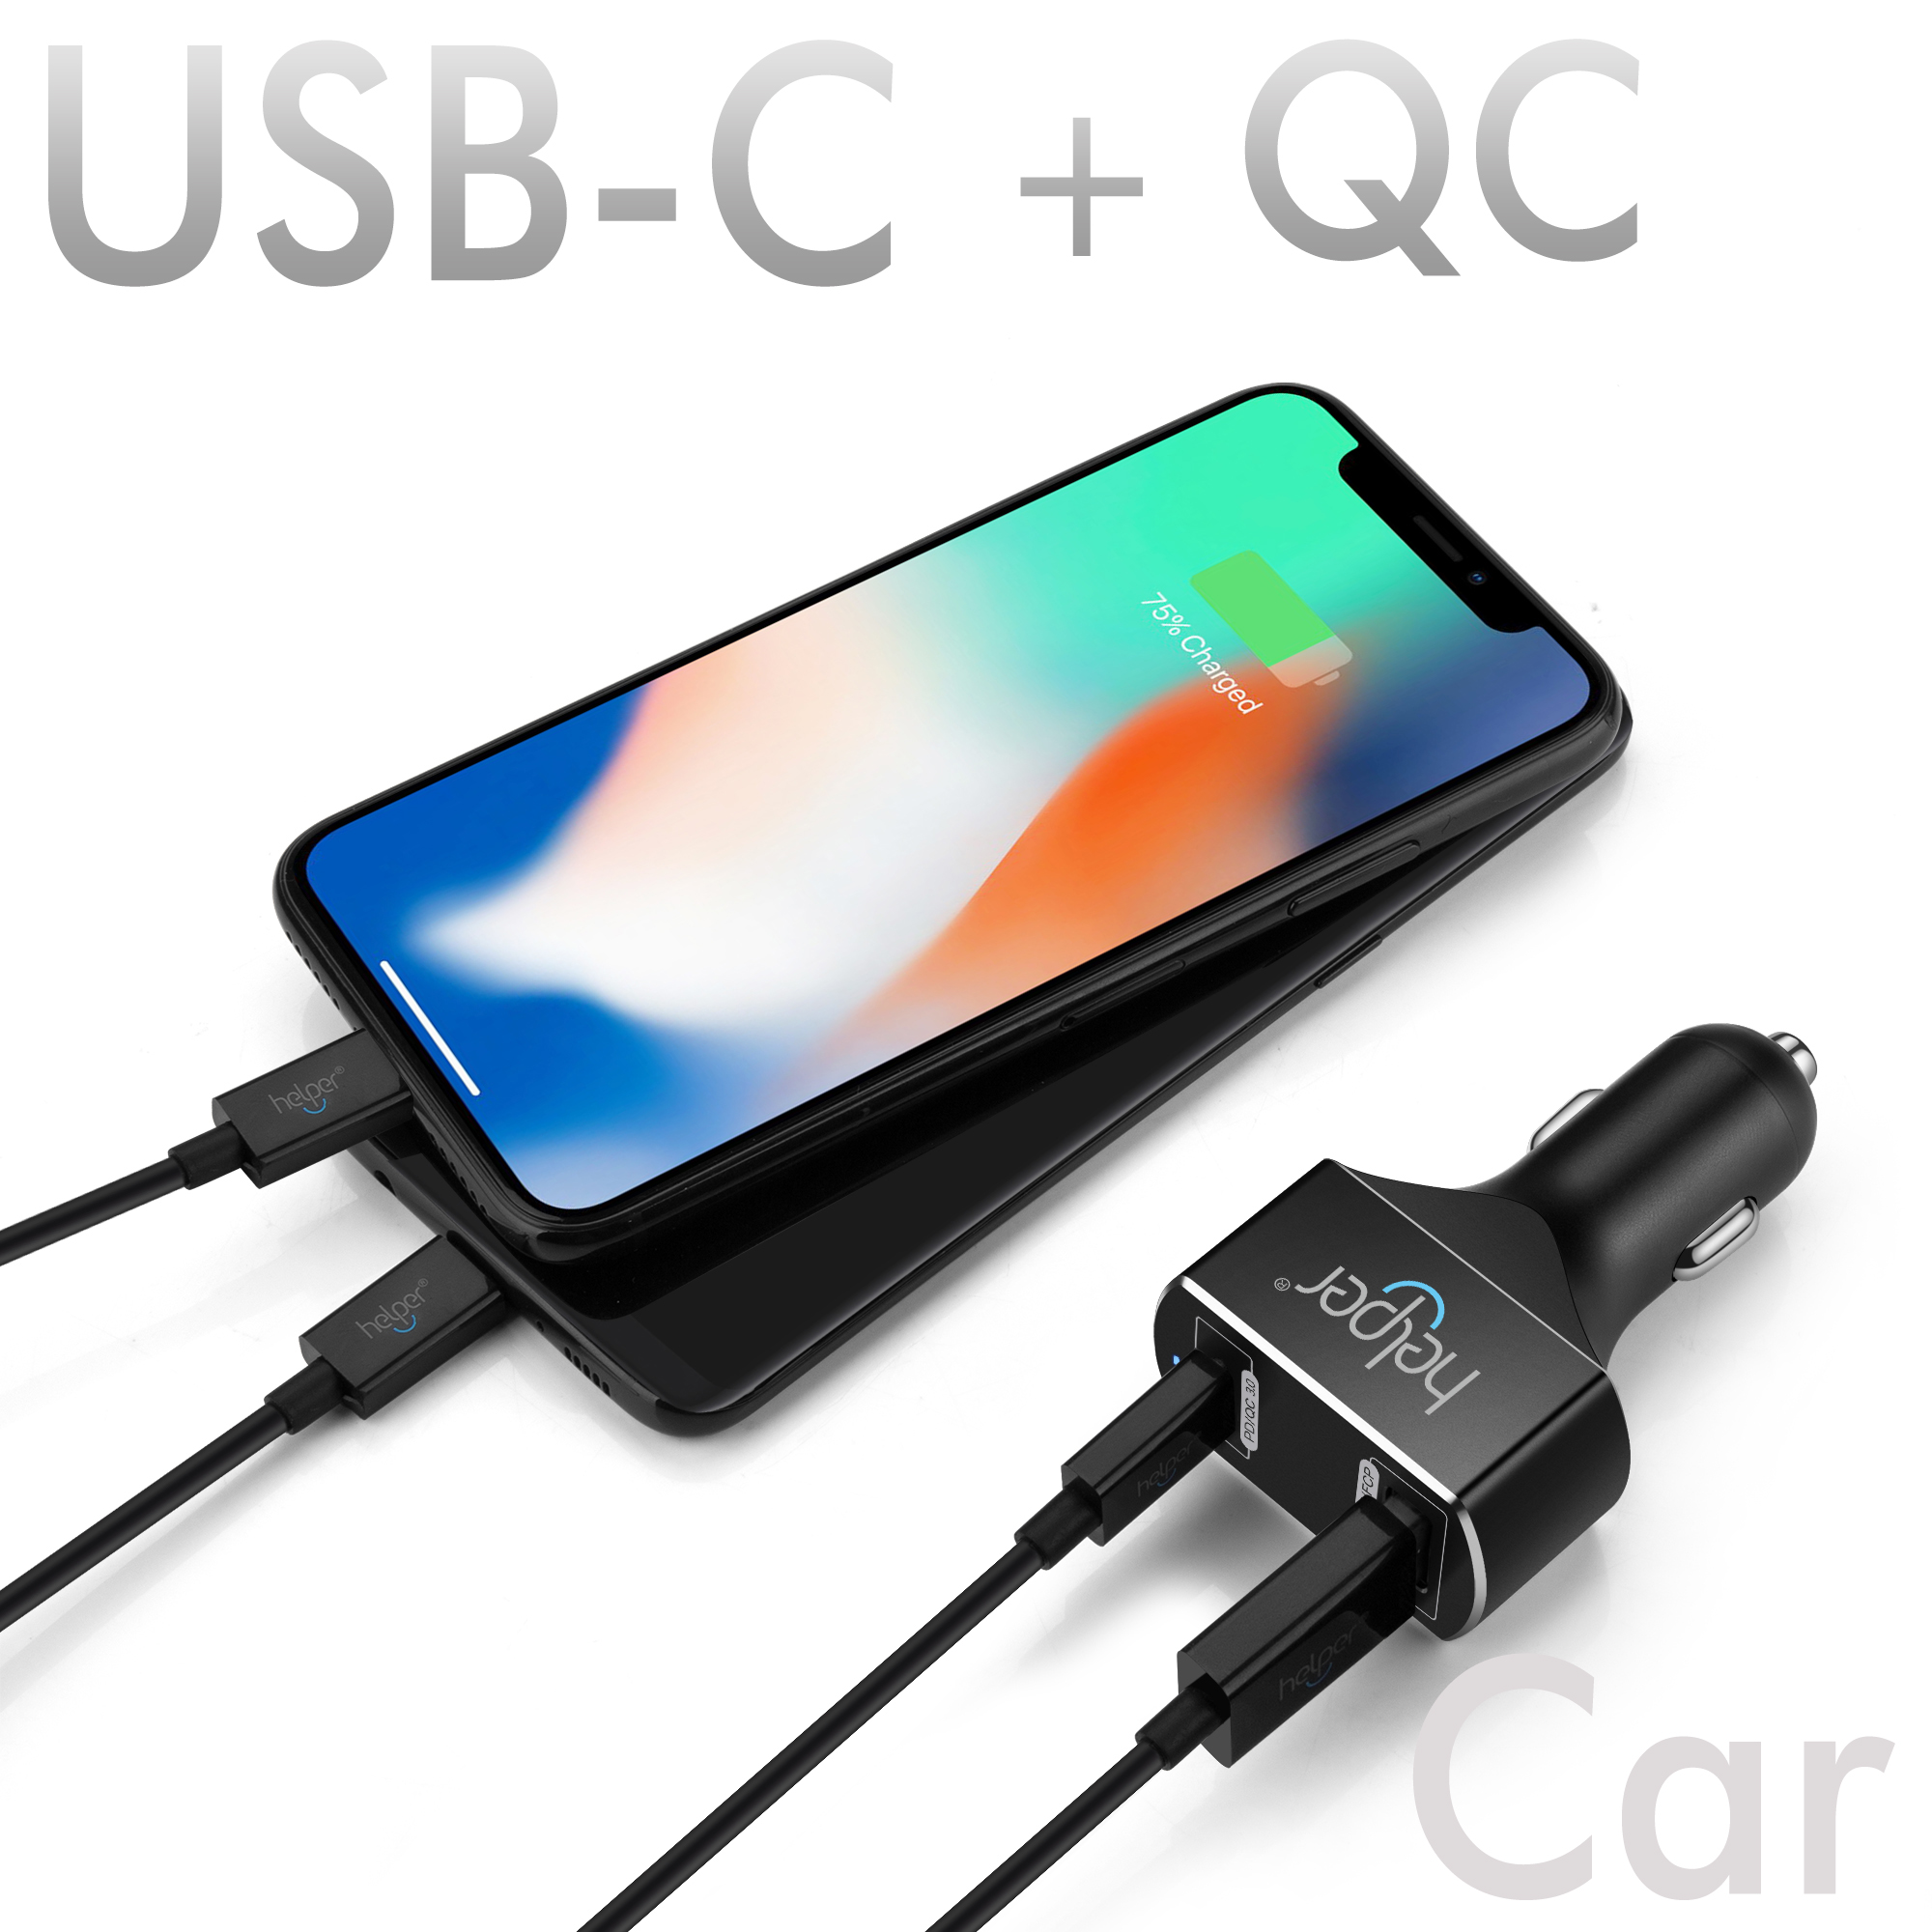 5V 20V USB C PD Car <font><b>Charger</b></font> with Power Delivery 45W Quick Charge 3.0 USB-C 18W QC3.0 USB Car <font><b>Charger</b></font> Adapter for Laptop Notebook